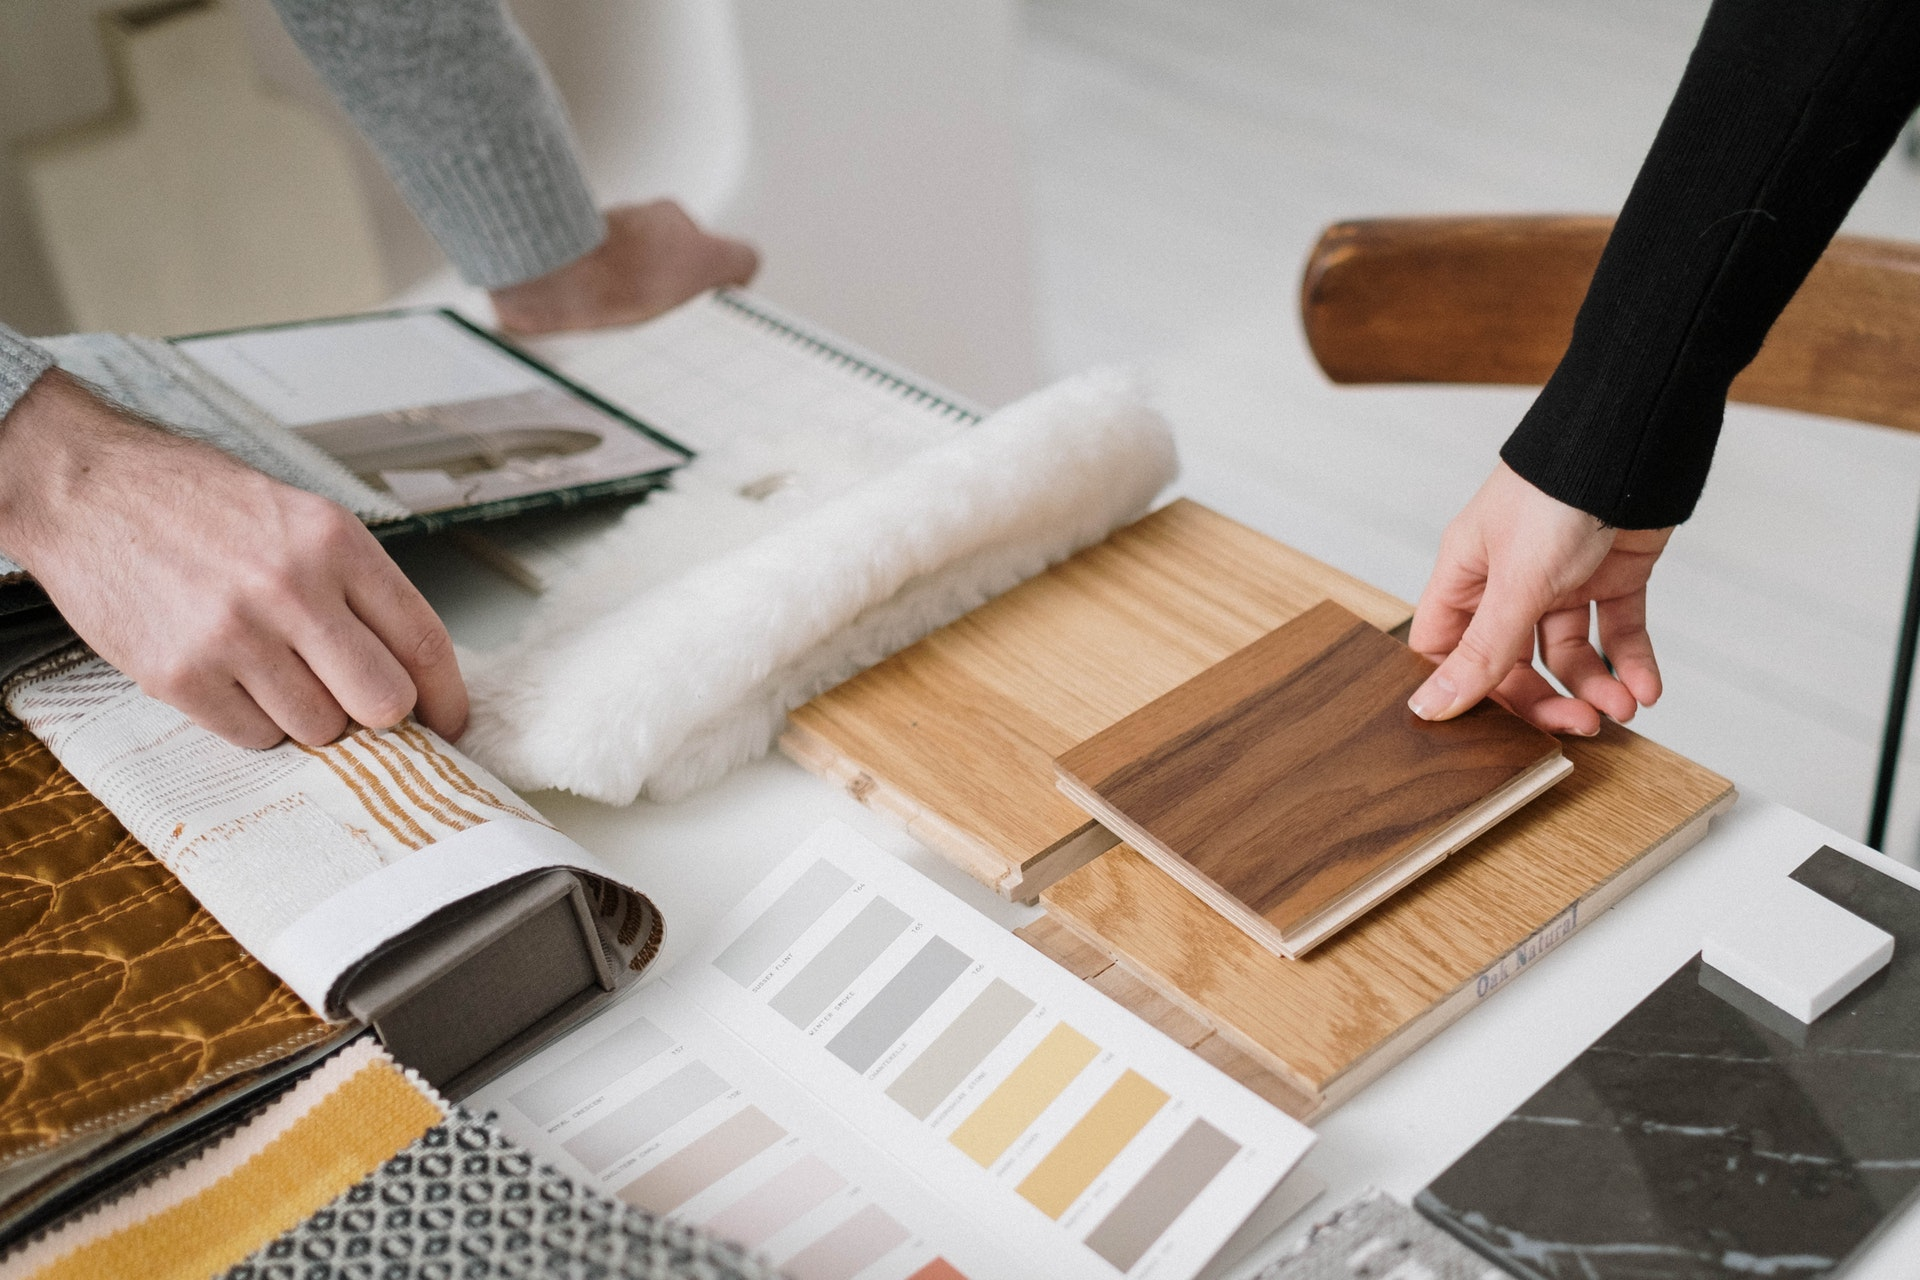 Top 5 Home Remodeling Trends in 2021